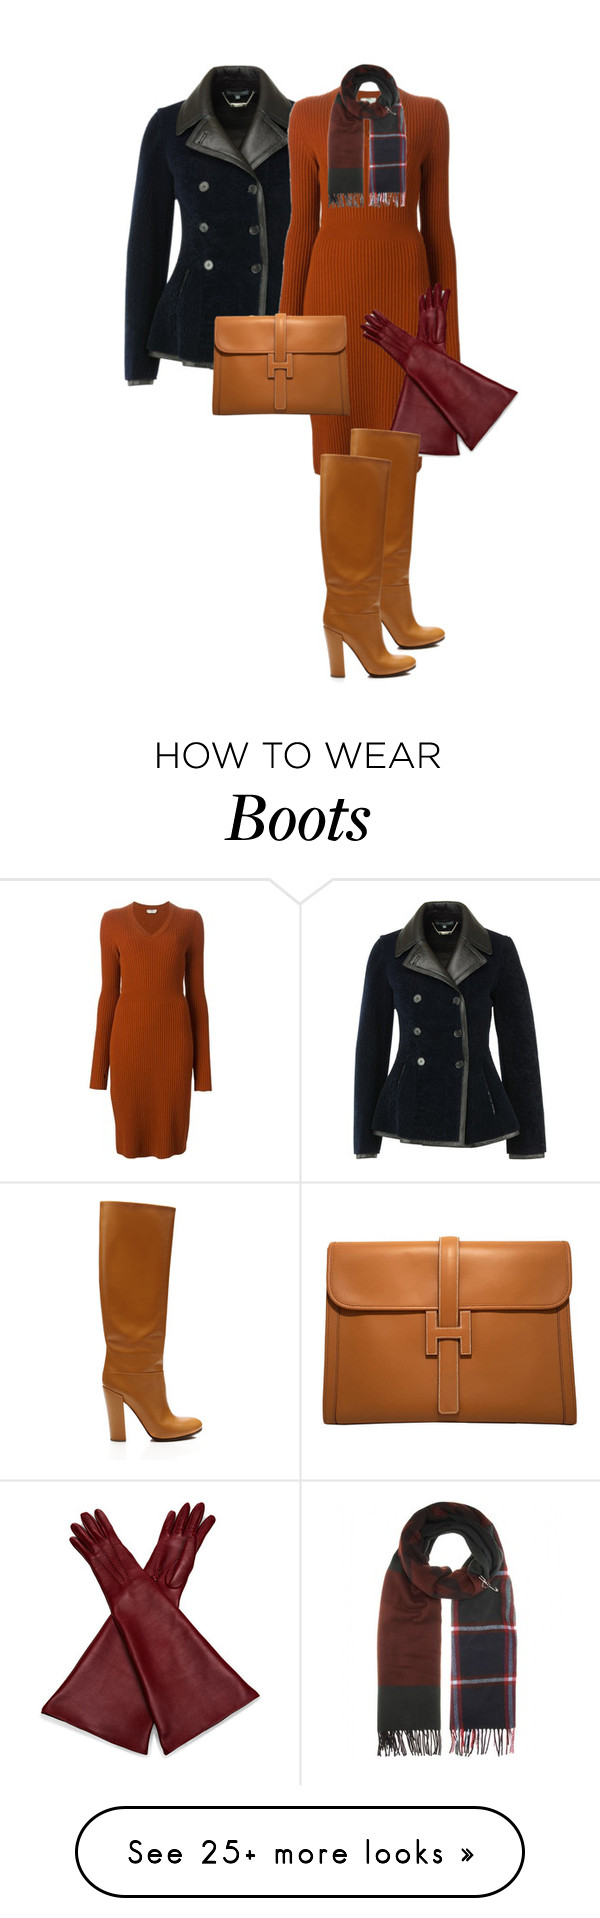 """Fall fever..."" by katelyn999 on Polyvore featuring Alexander McQueen, Fendi, Hermès, Acne Studios, Rochas, Proenza Schouler and fall2015"